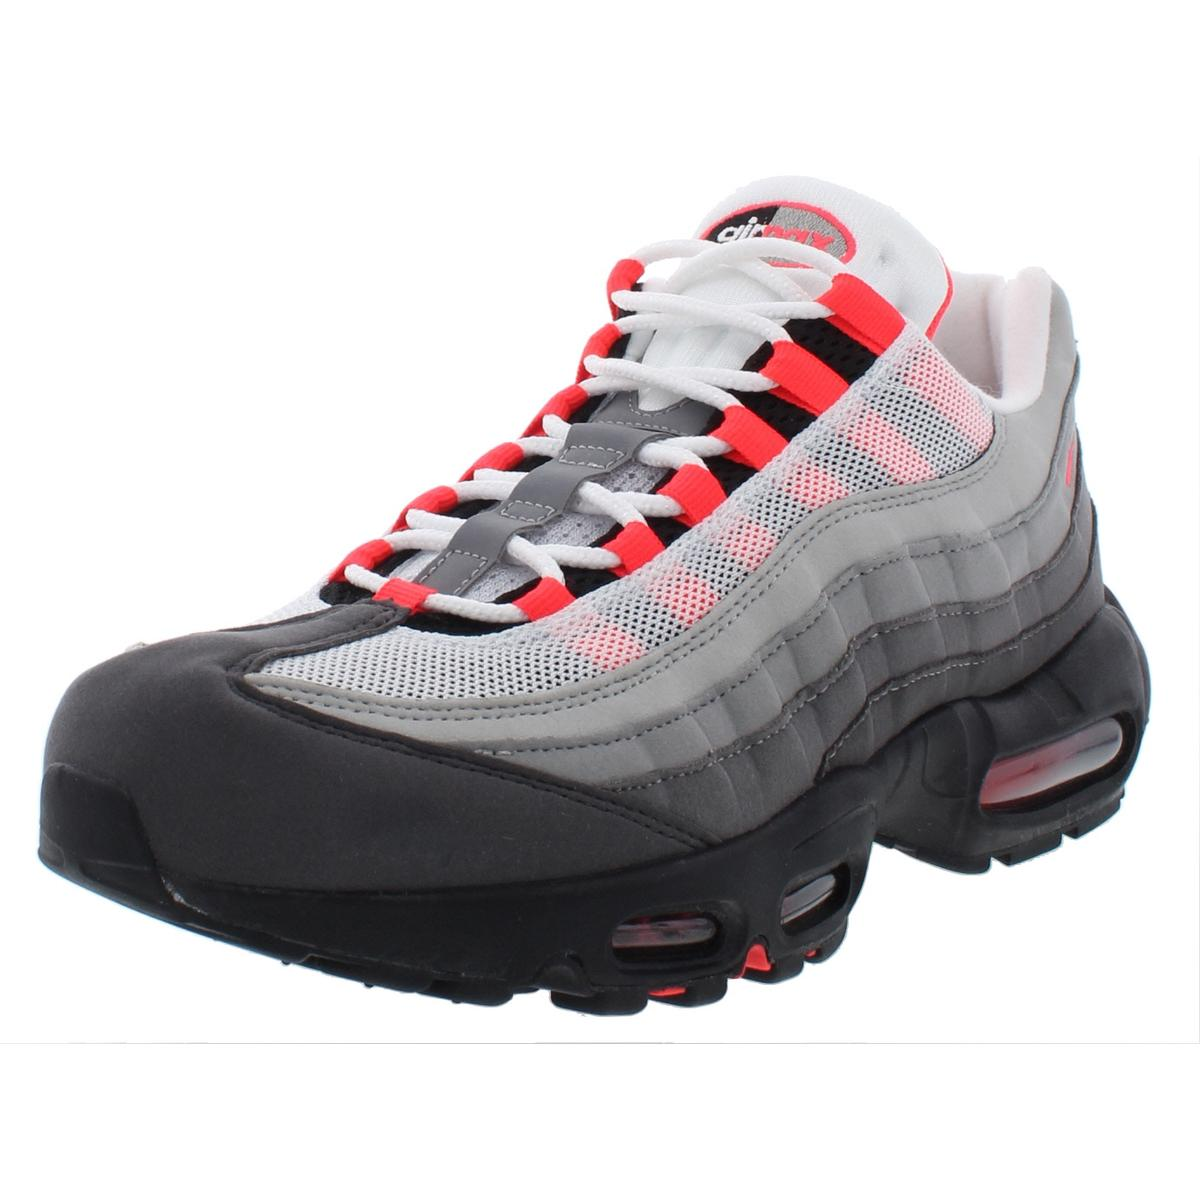 Details about Nike Womens Air Max 95 OG Lifestyle Hiking, Trail Shoes Sneakers BHFO 4456